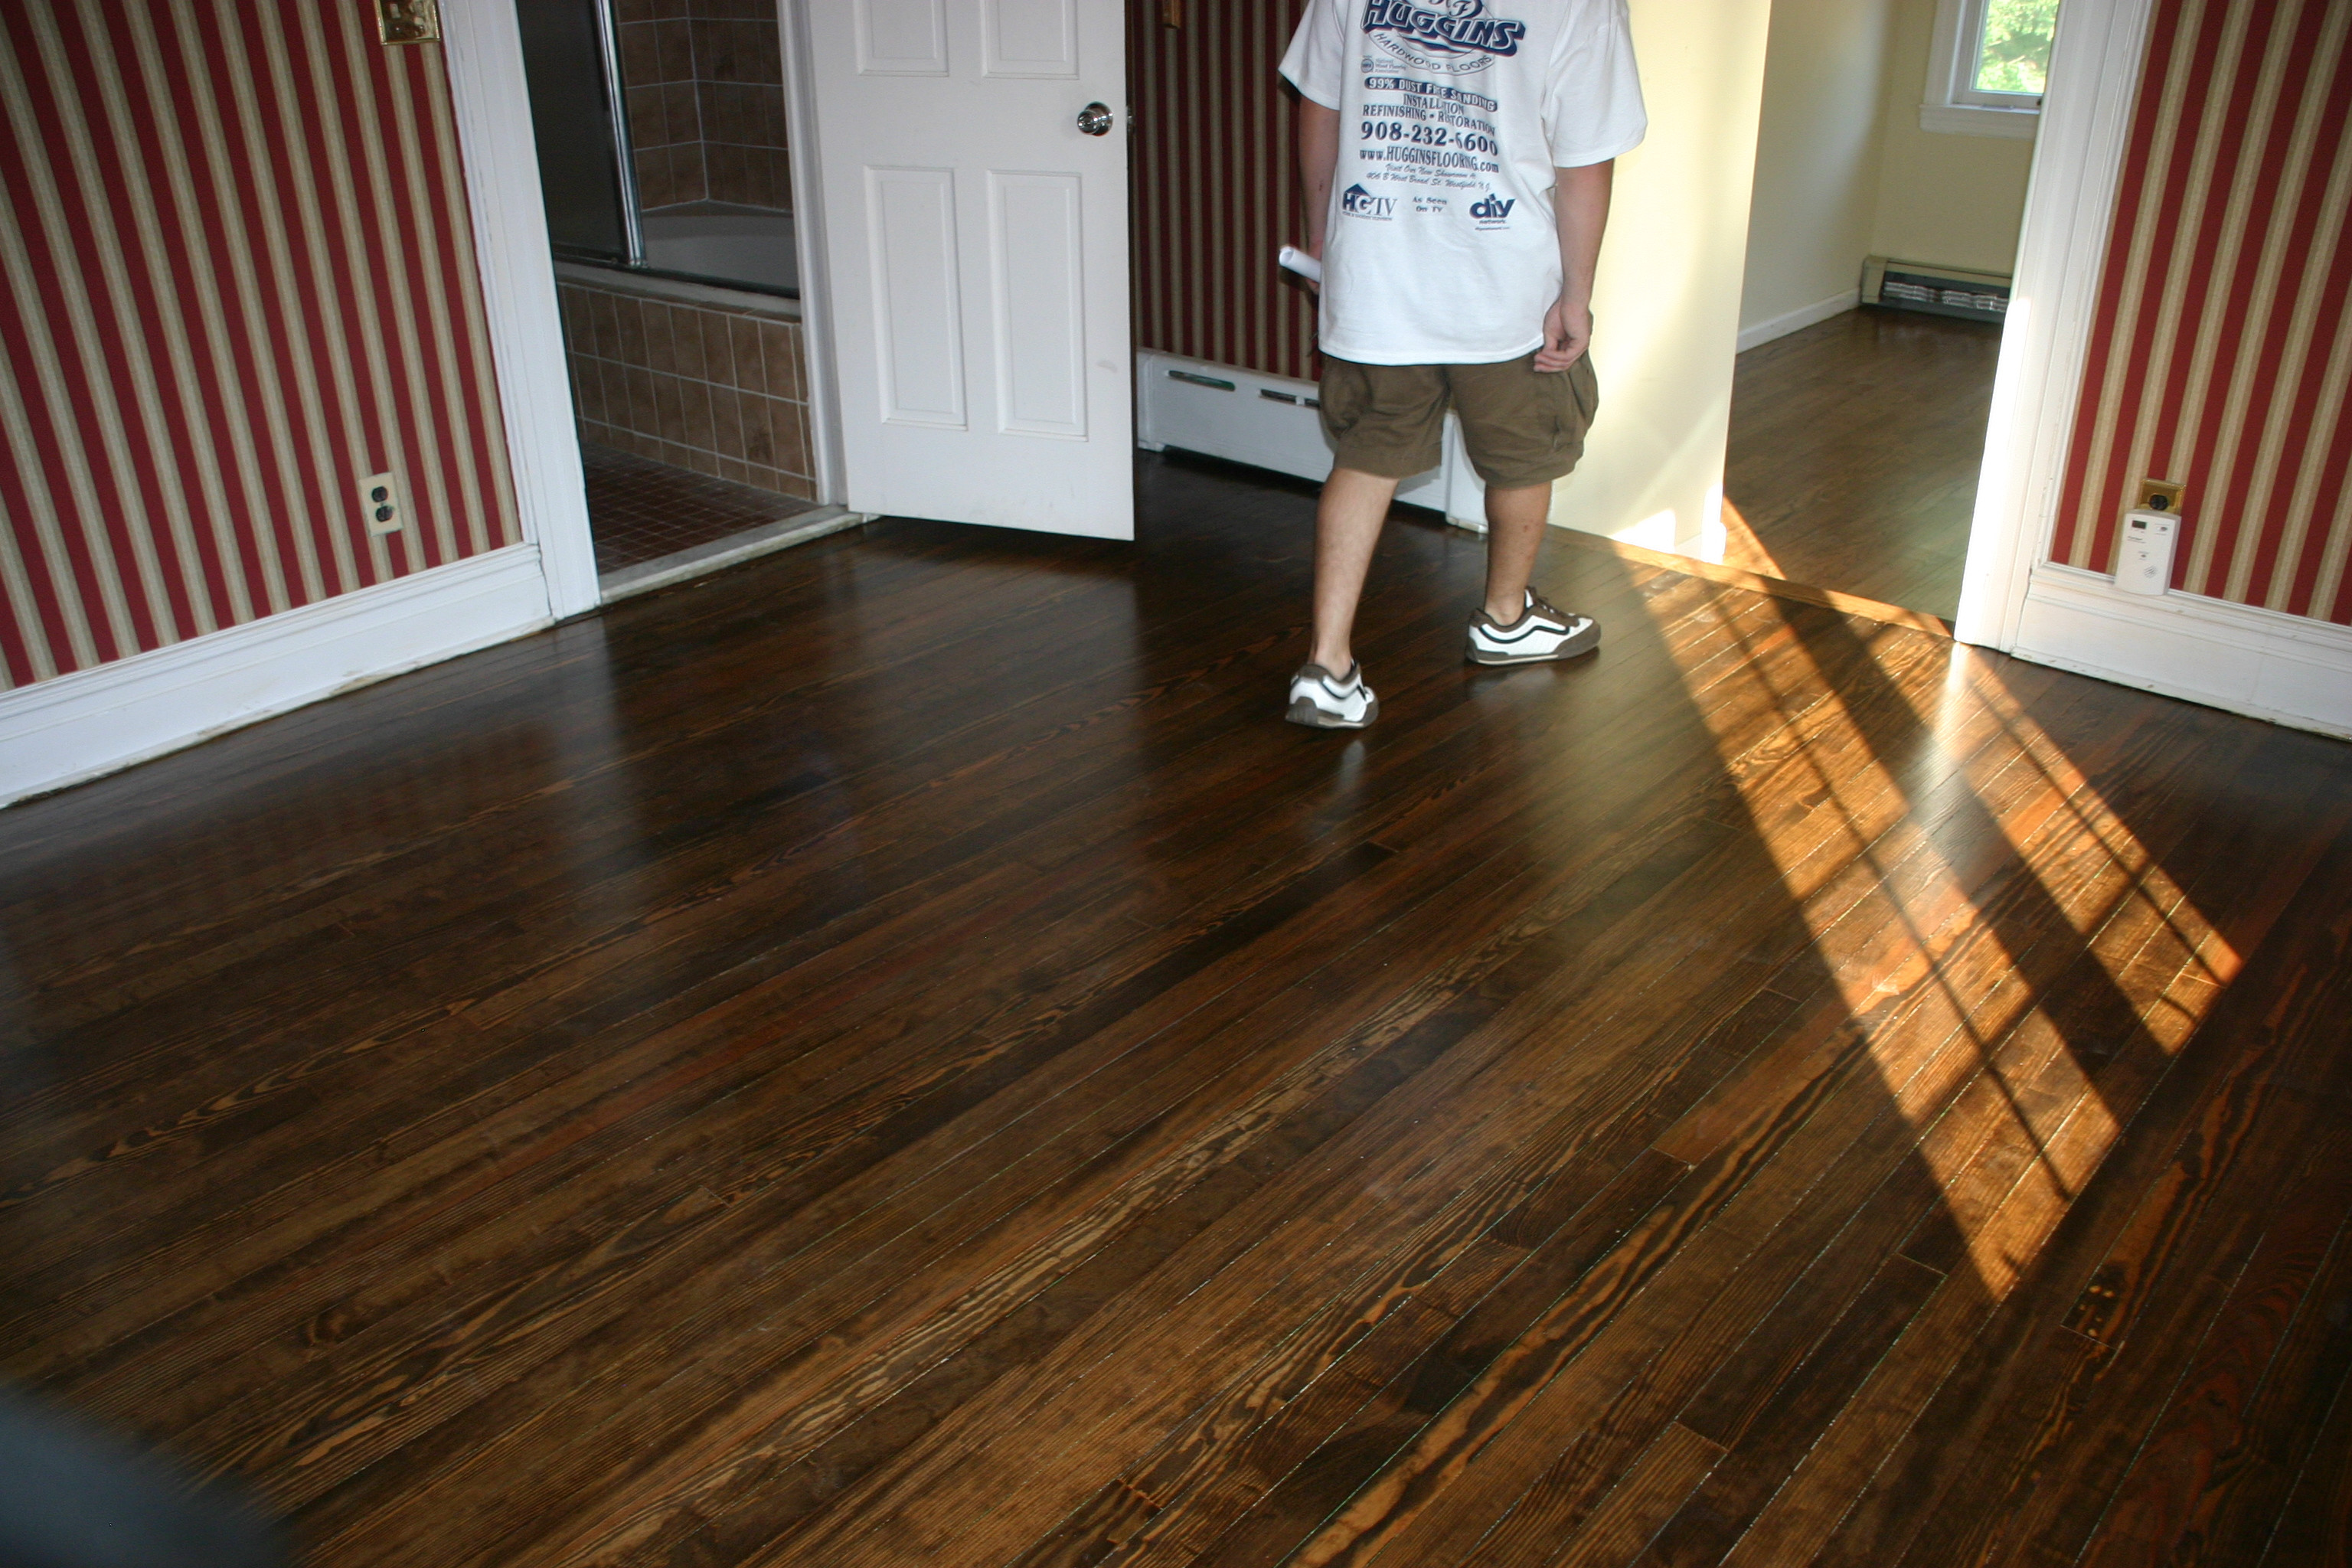 Staining Hardwood Floors Darker Cost Of Fabulous Dark Walnut Stain Floors Ee49 Roccommunity with Very Best Pine Flooring Pine Flooring Dark Stain Dark Walnut Hardwood Floors Bg58